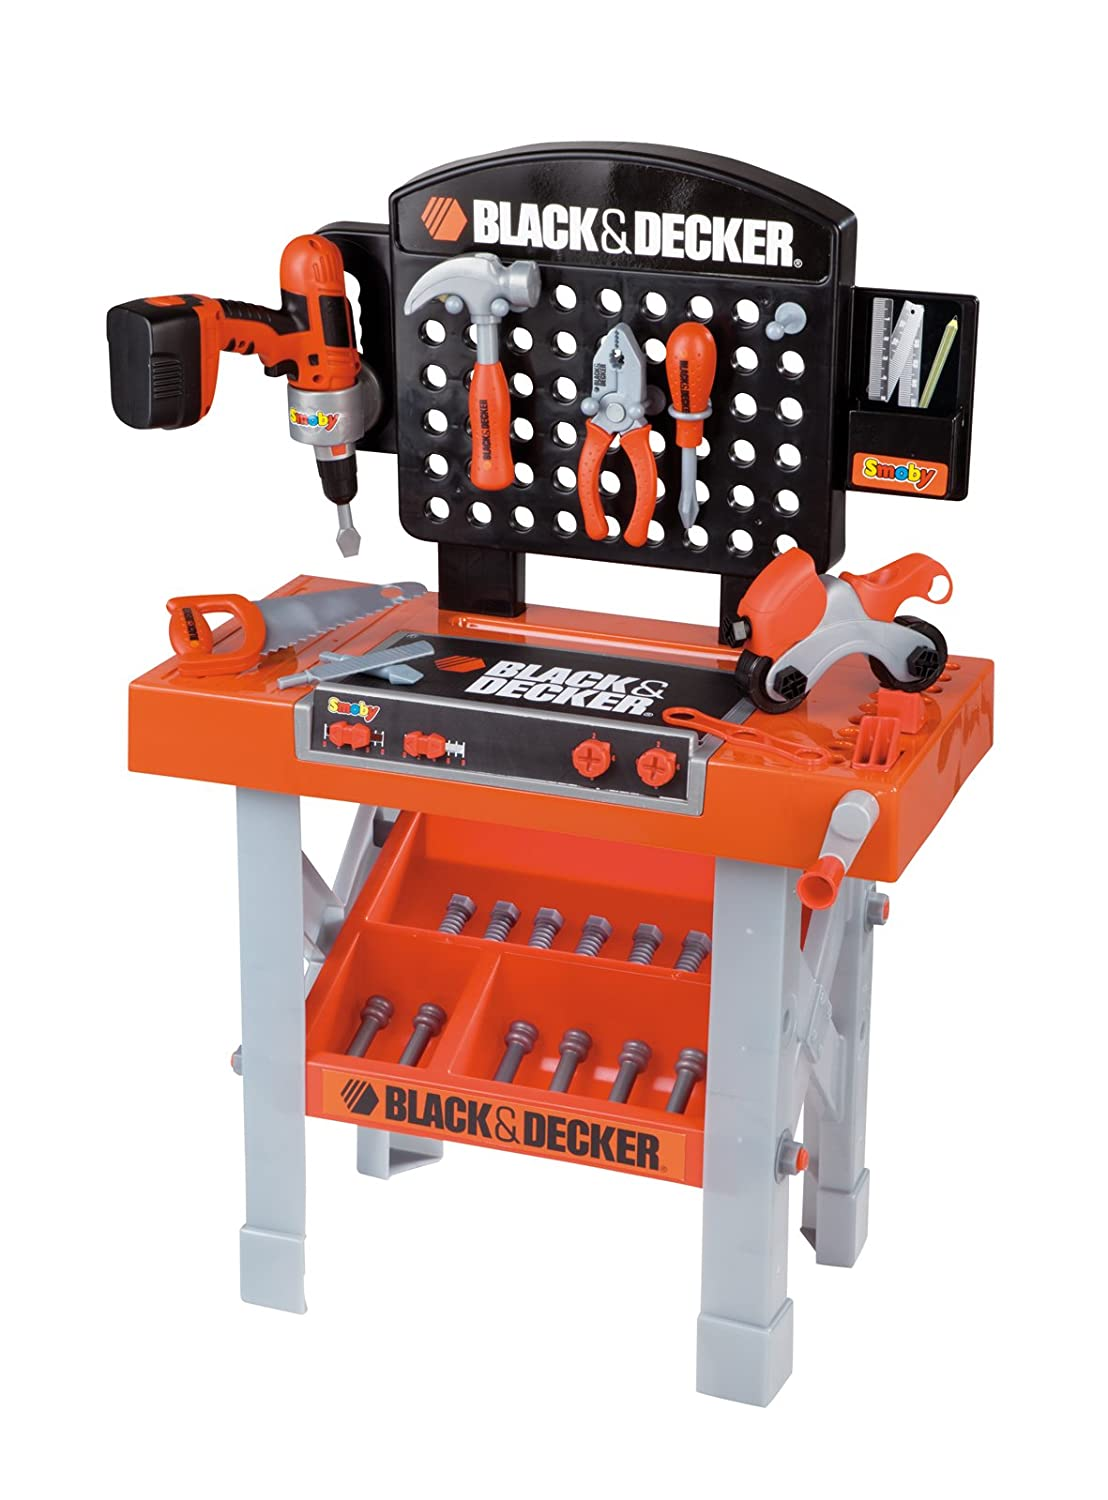 Black und Decker Kinderwerkbank - Smoby 500205 Black + Decker Super Werkbank